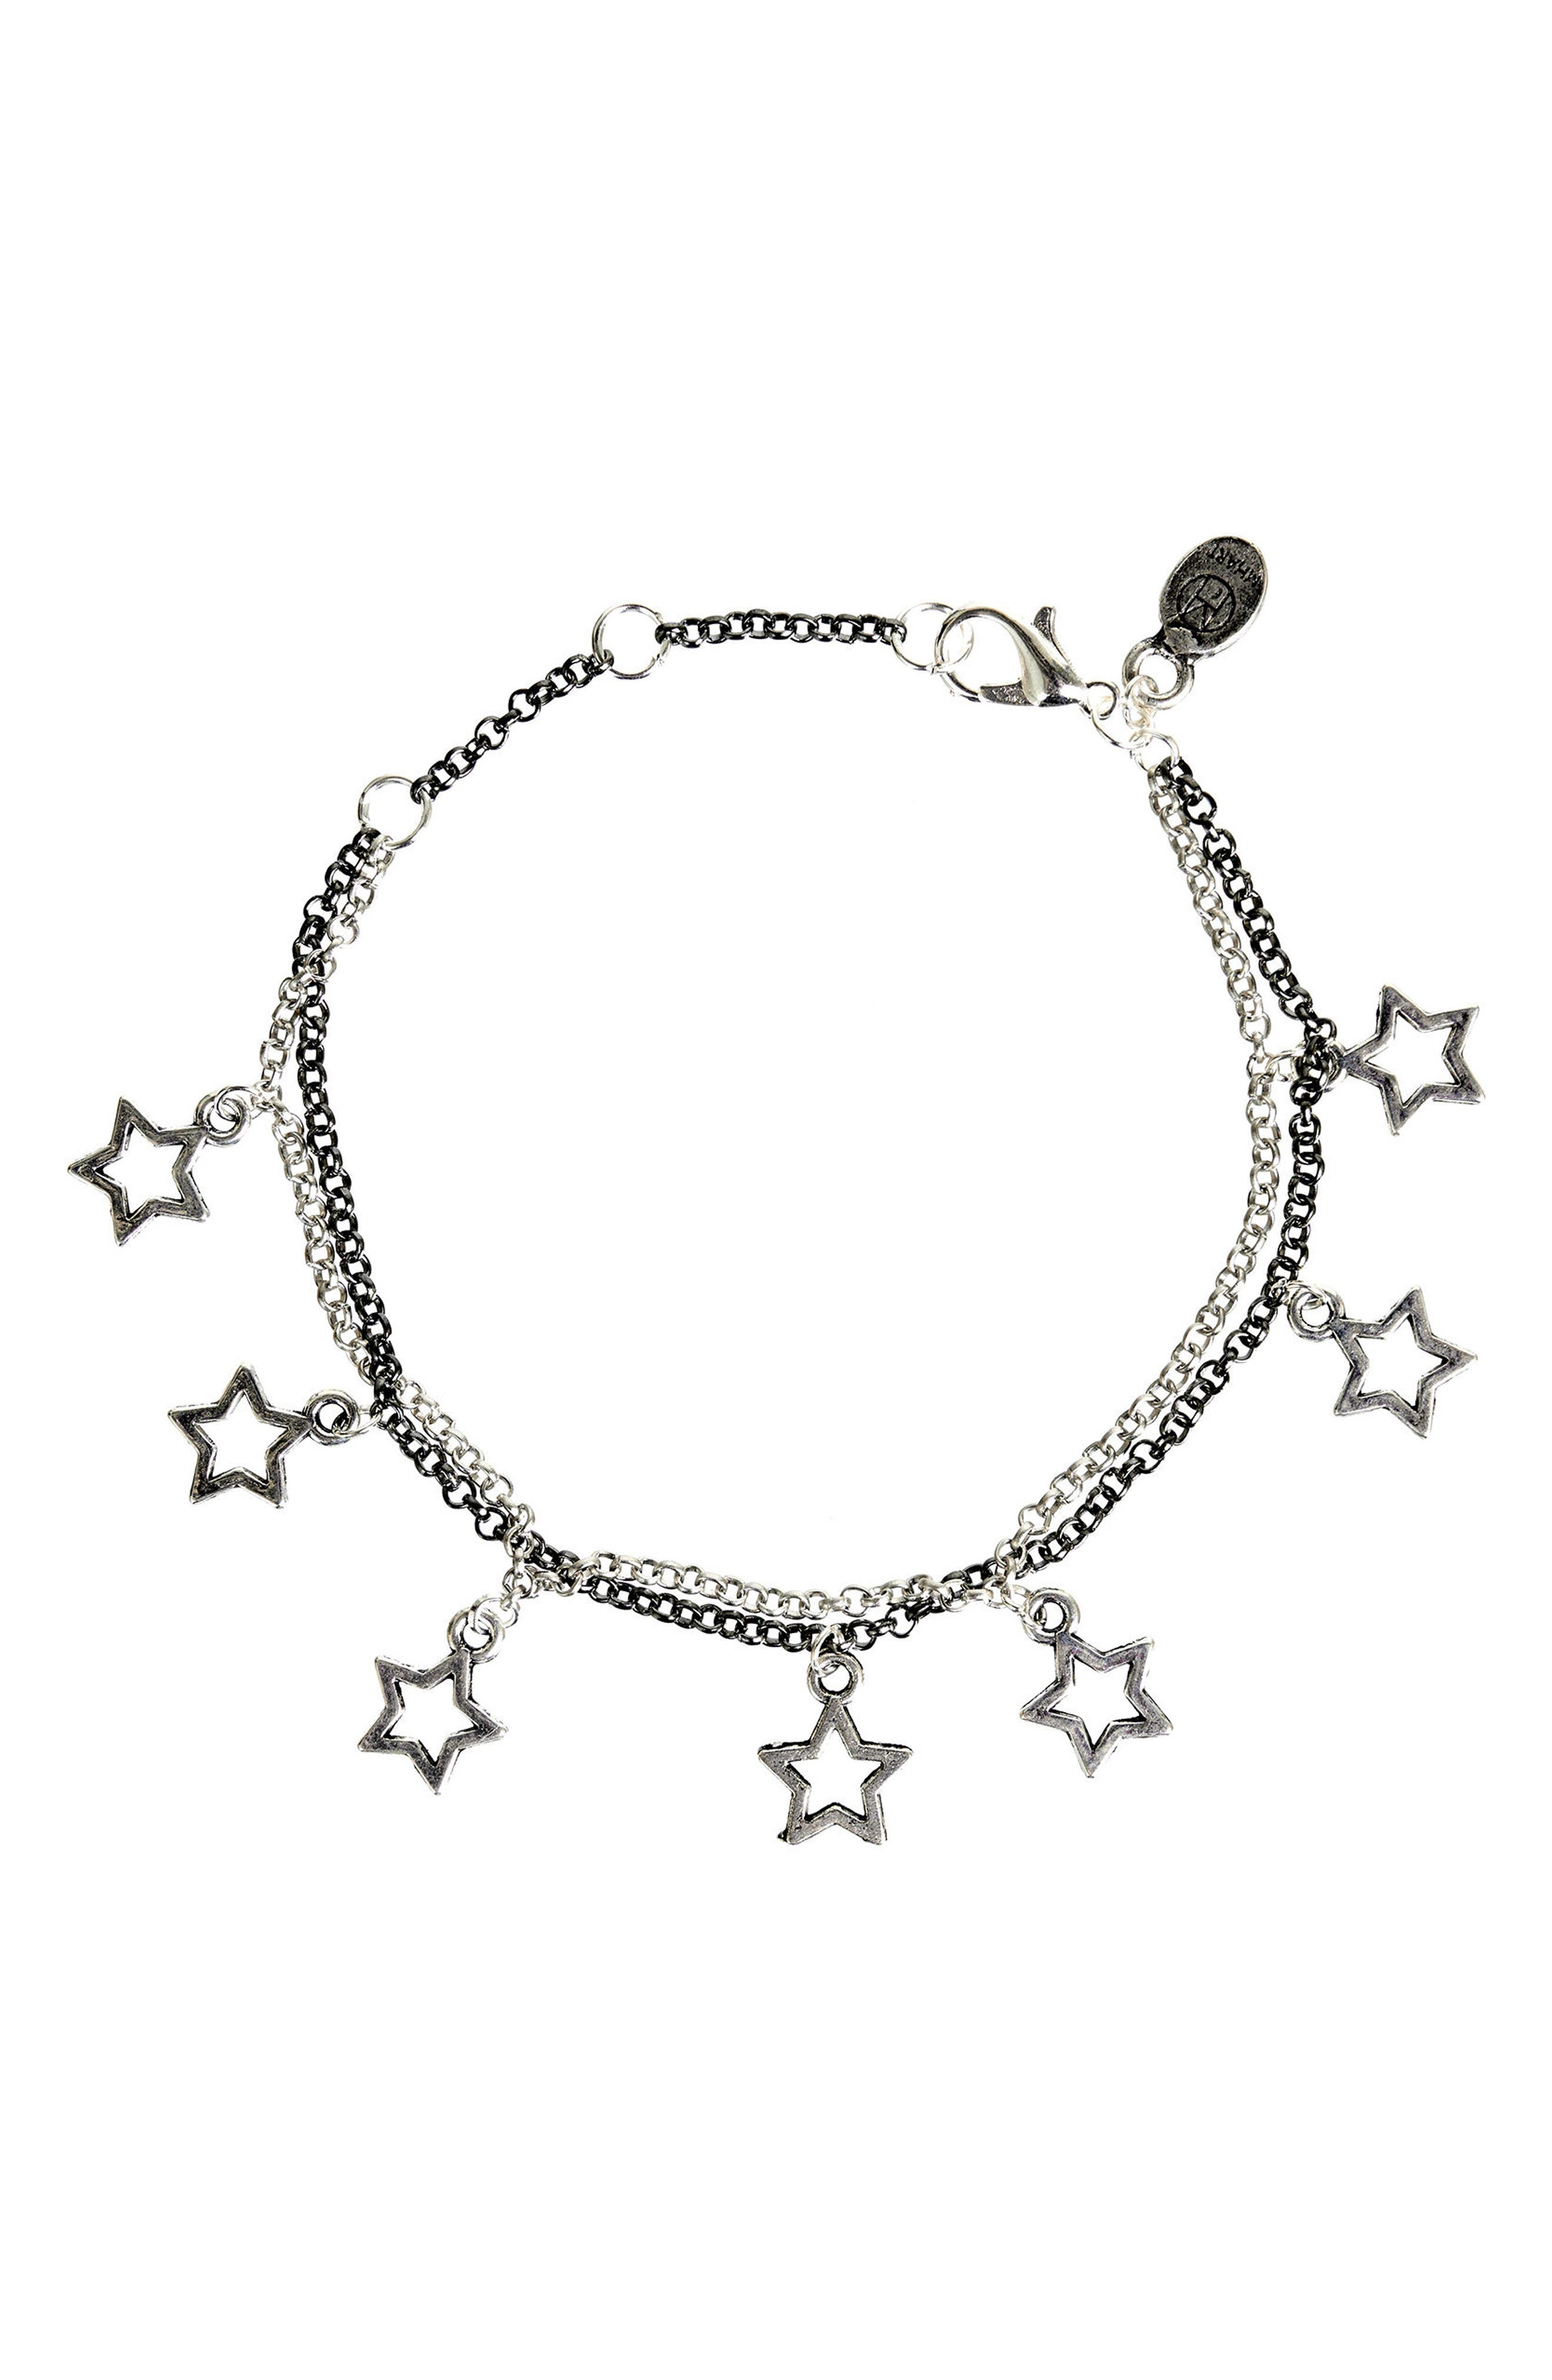 Star Charm Bracelet,                             Main thumbnail 1, color,                             Silver